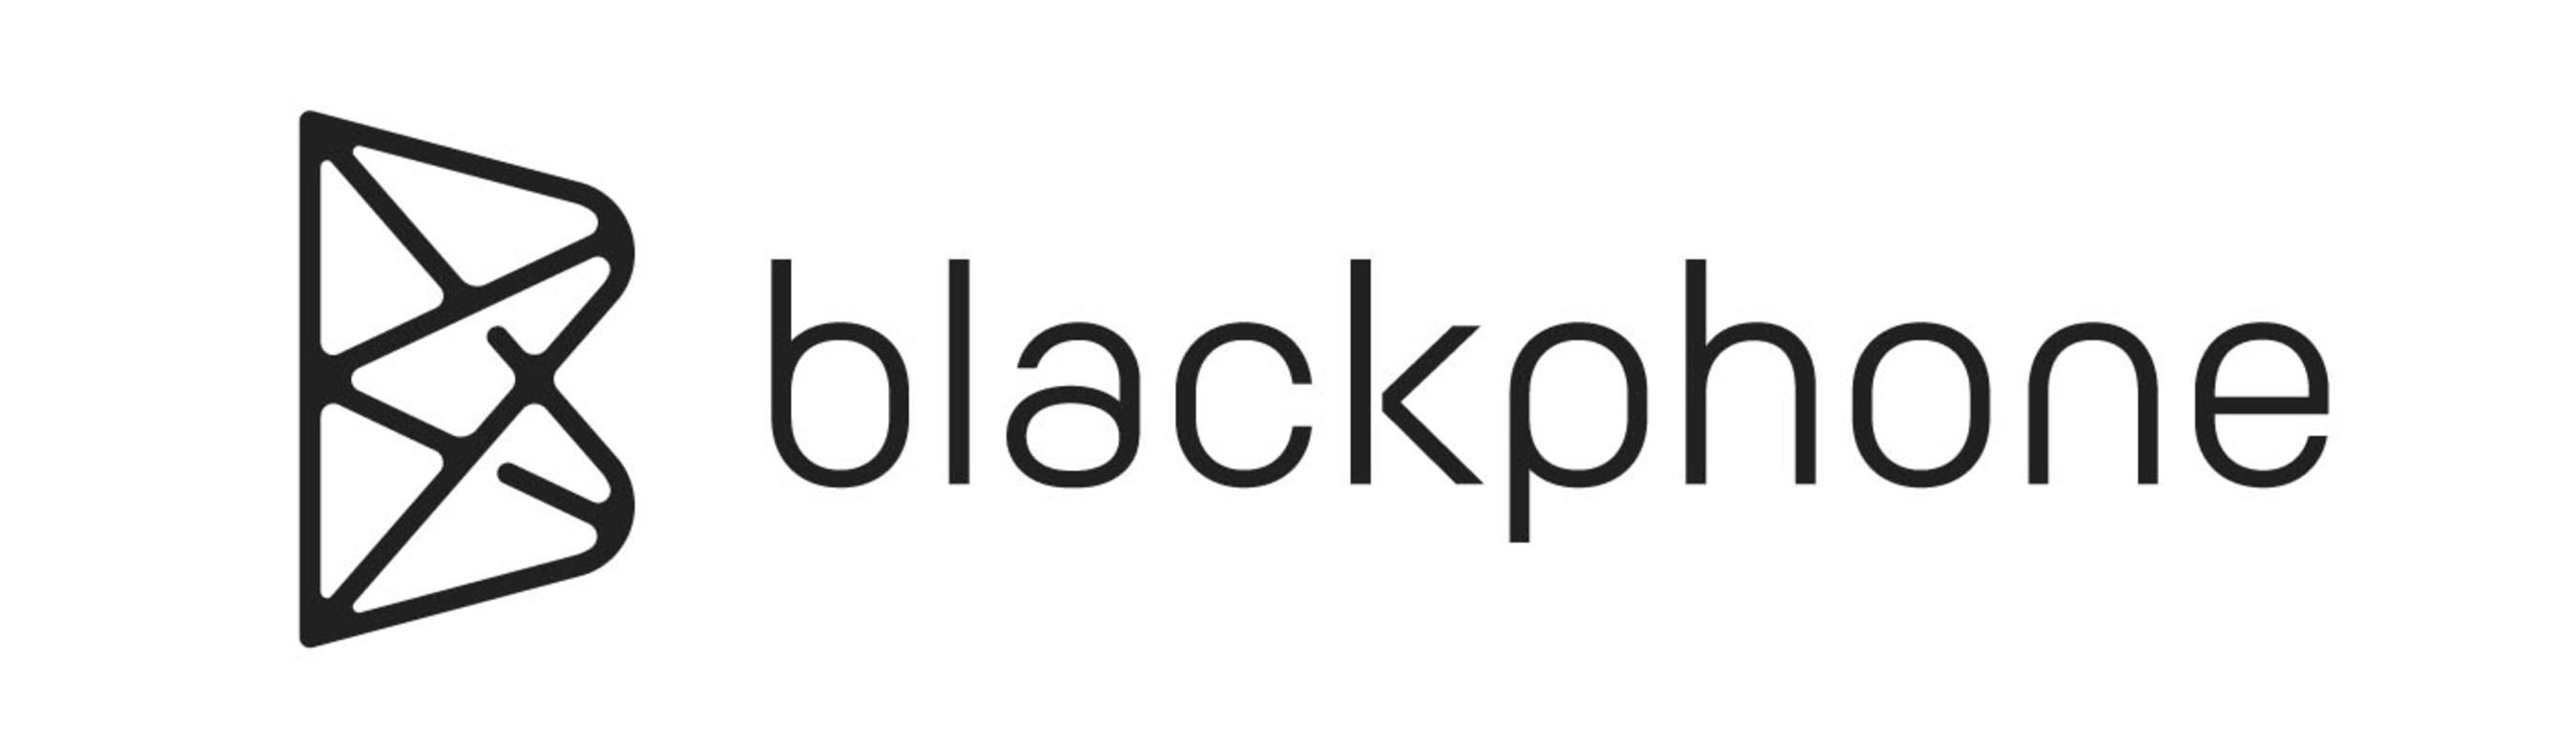 blackphone.ch